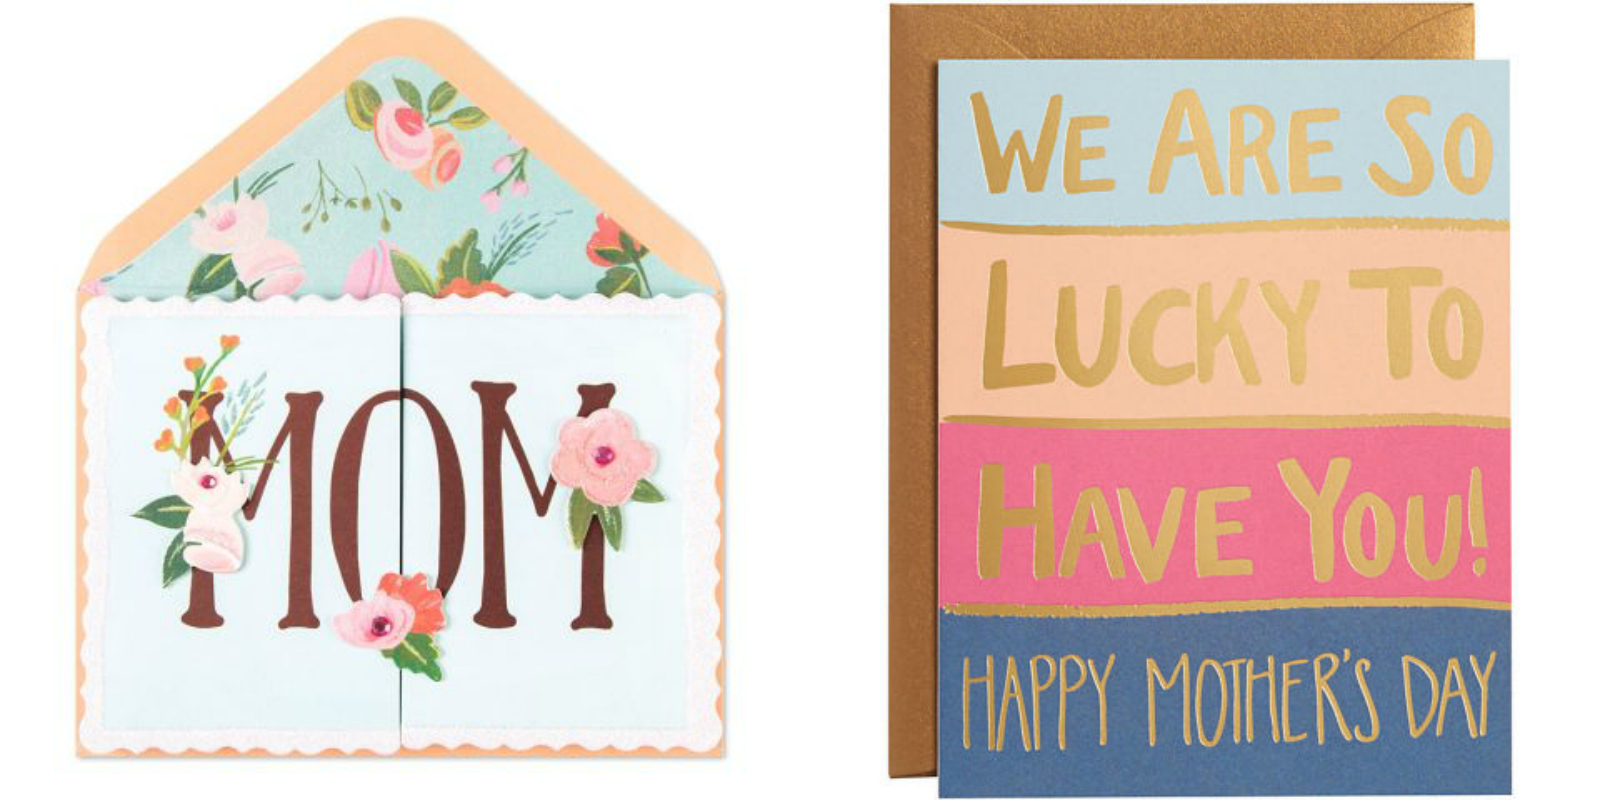 18 mother 39 s day card ideas best diy and store bought Good ideas for mothers day card